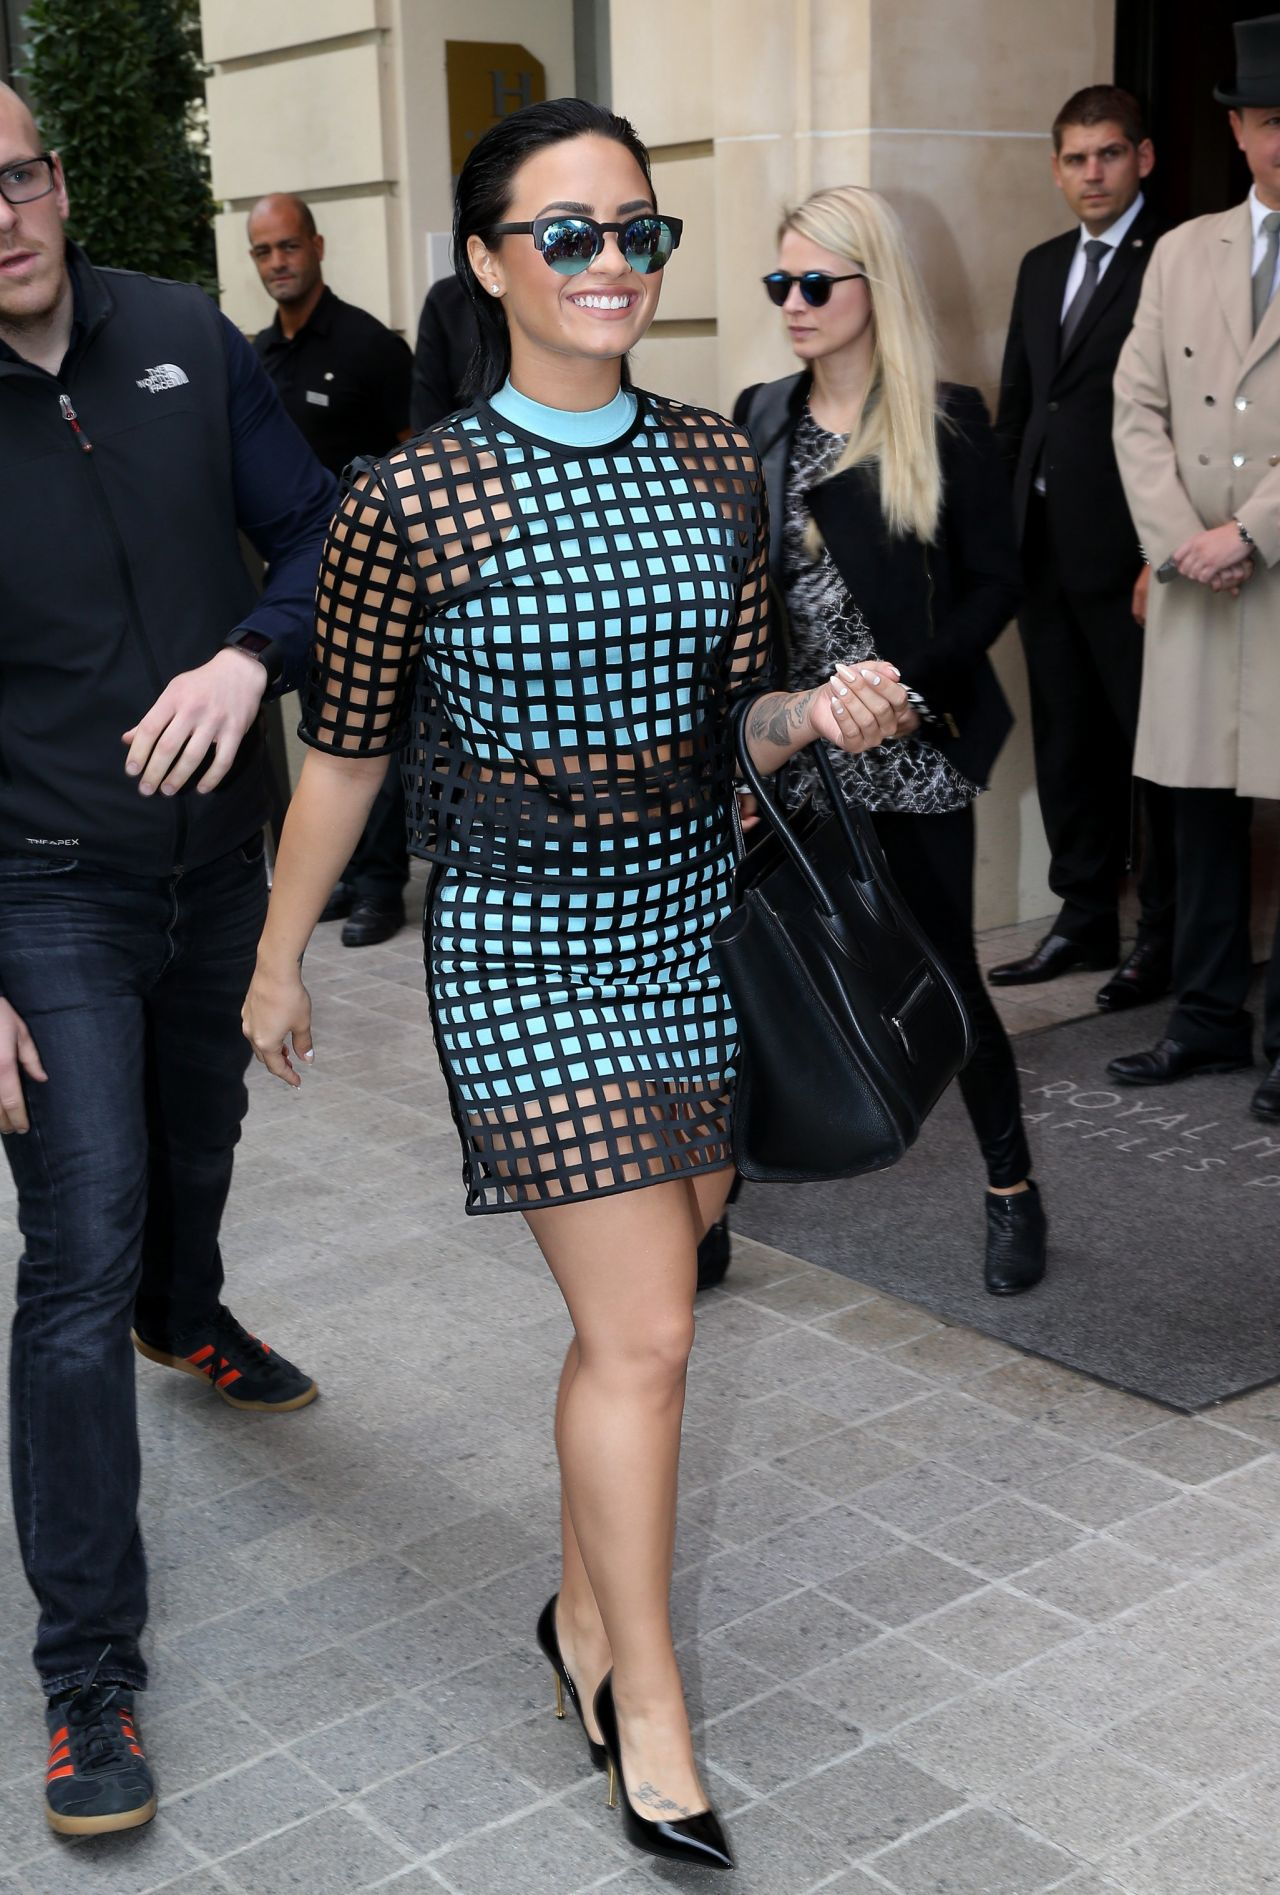 demi-lovato-style-out-in-paris-september-2015_18